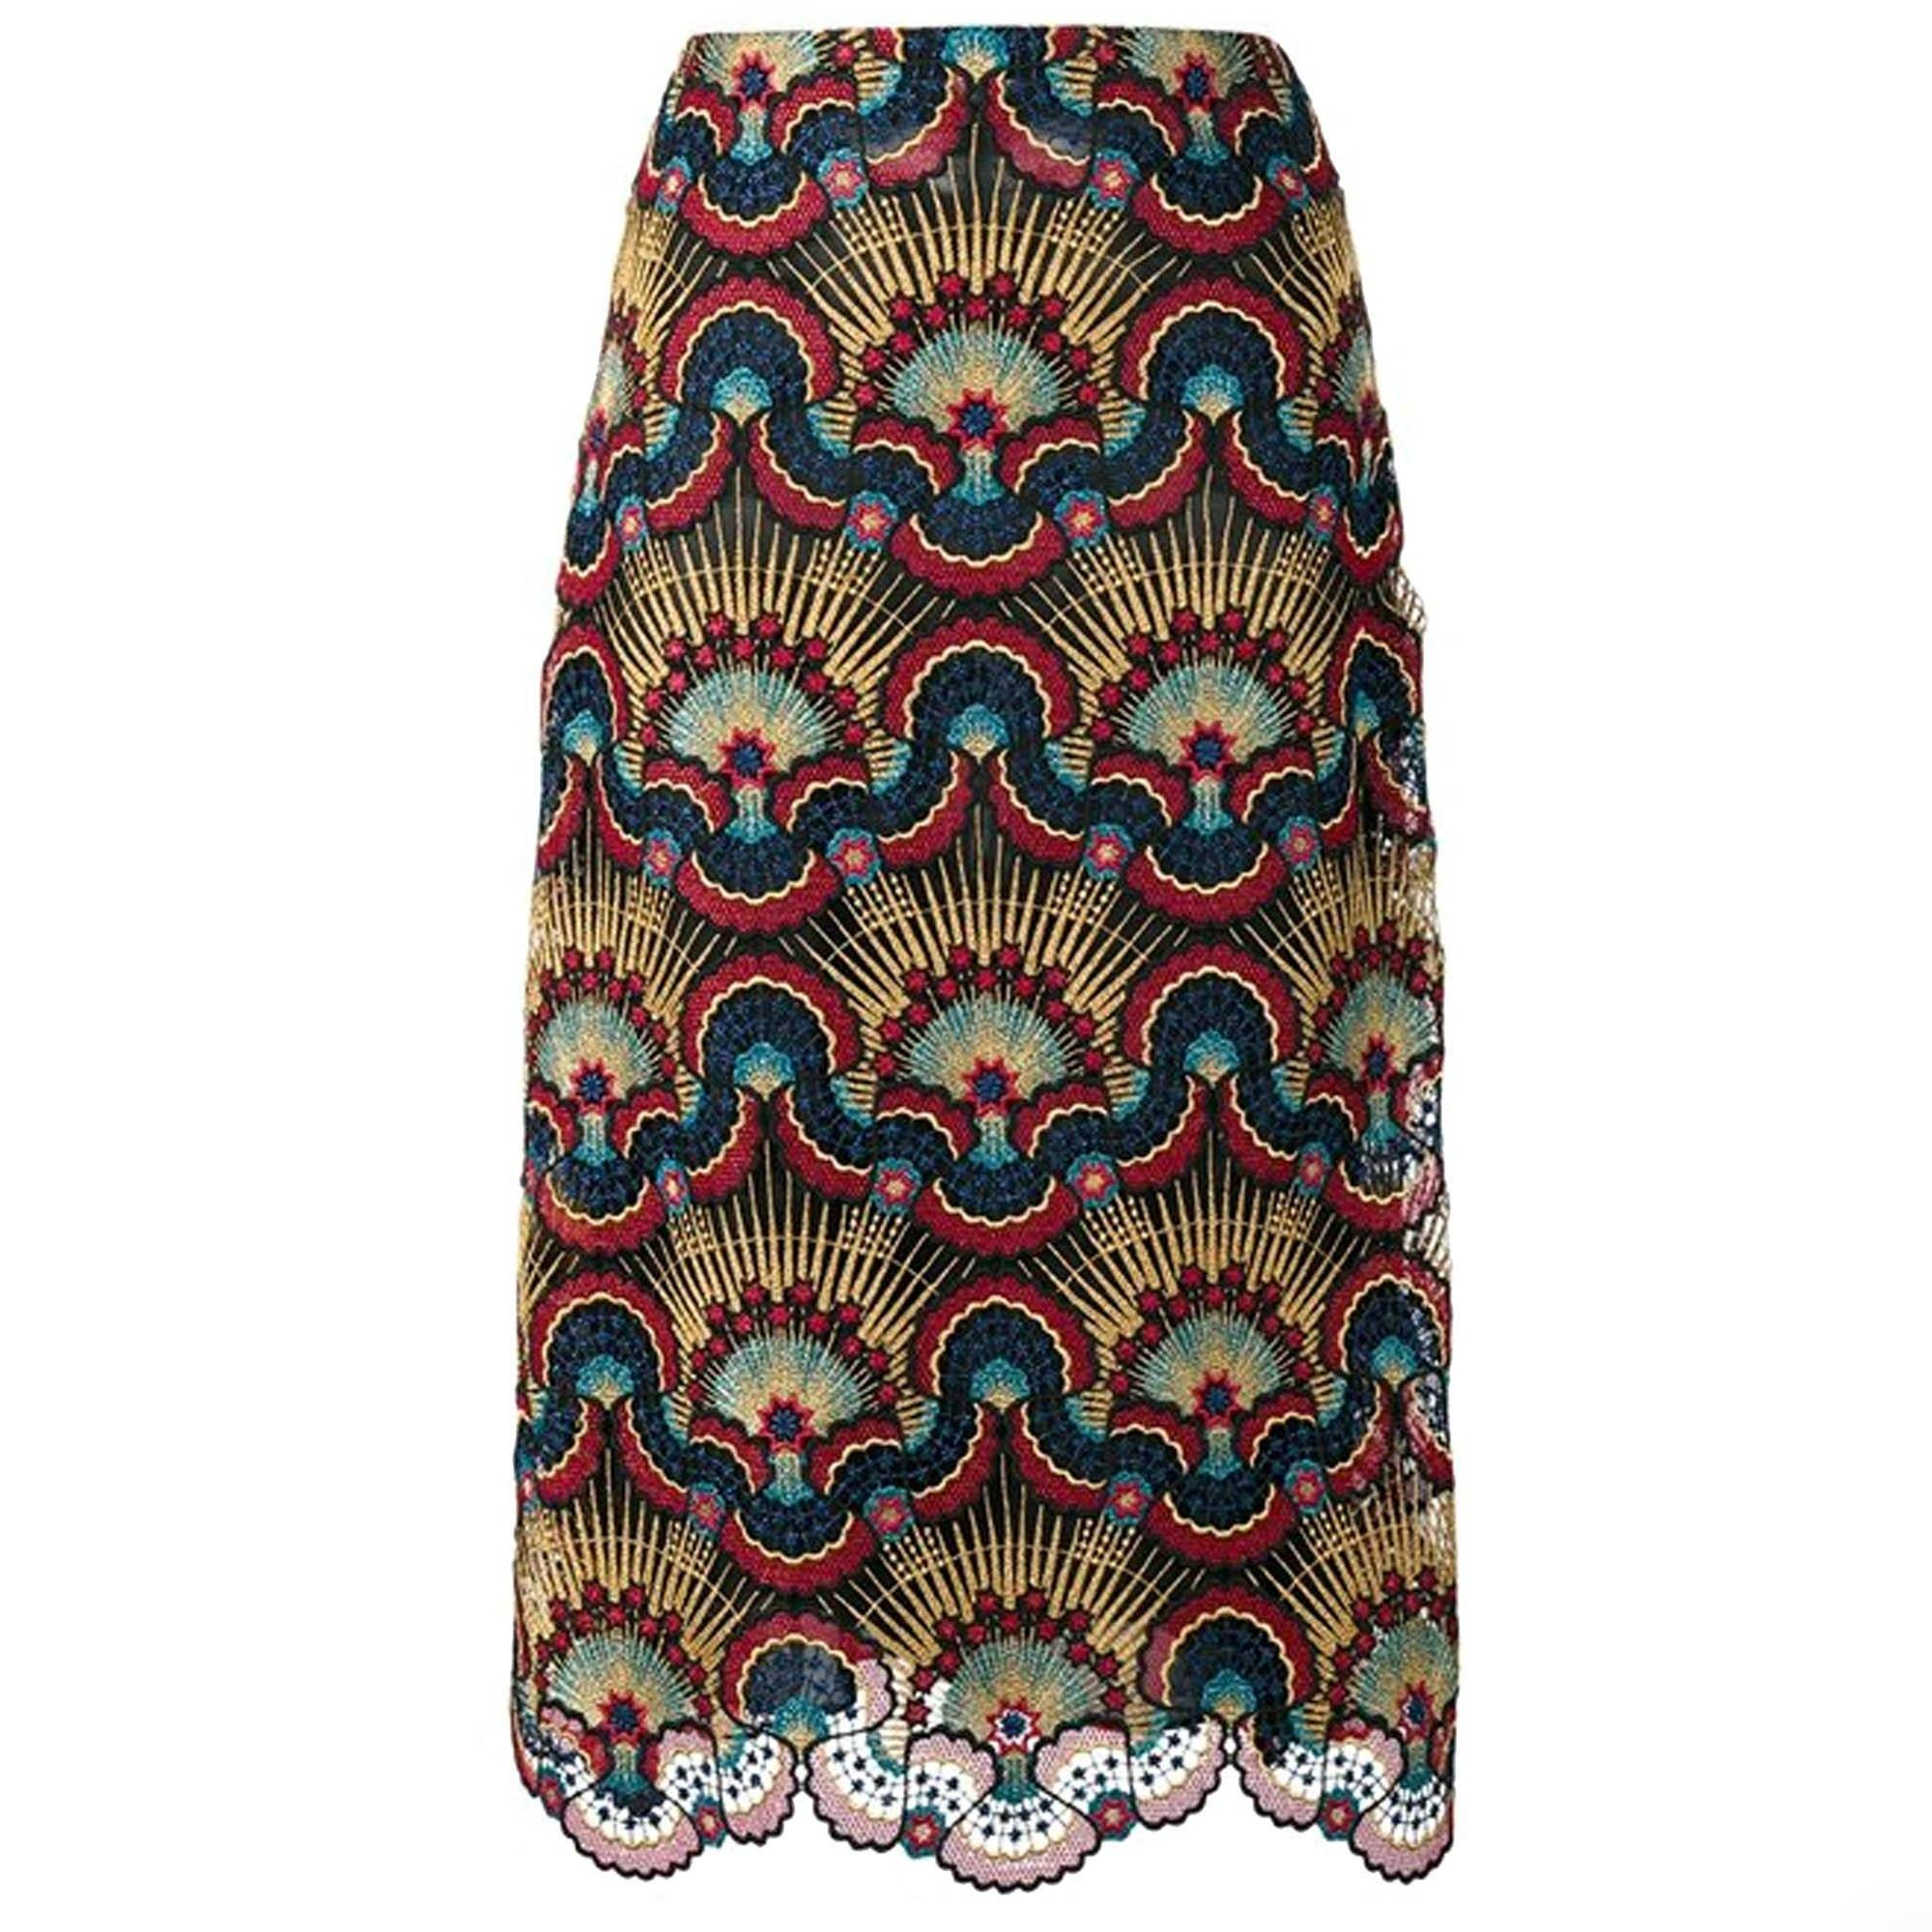 Valentino Enchanted Wonderland Macramé-Lace Midi Skirt